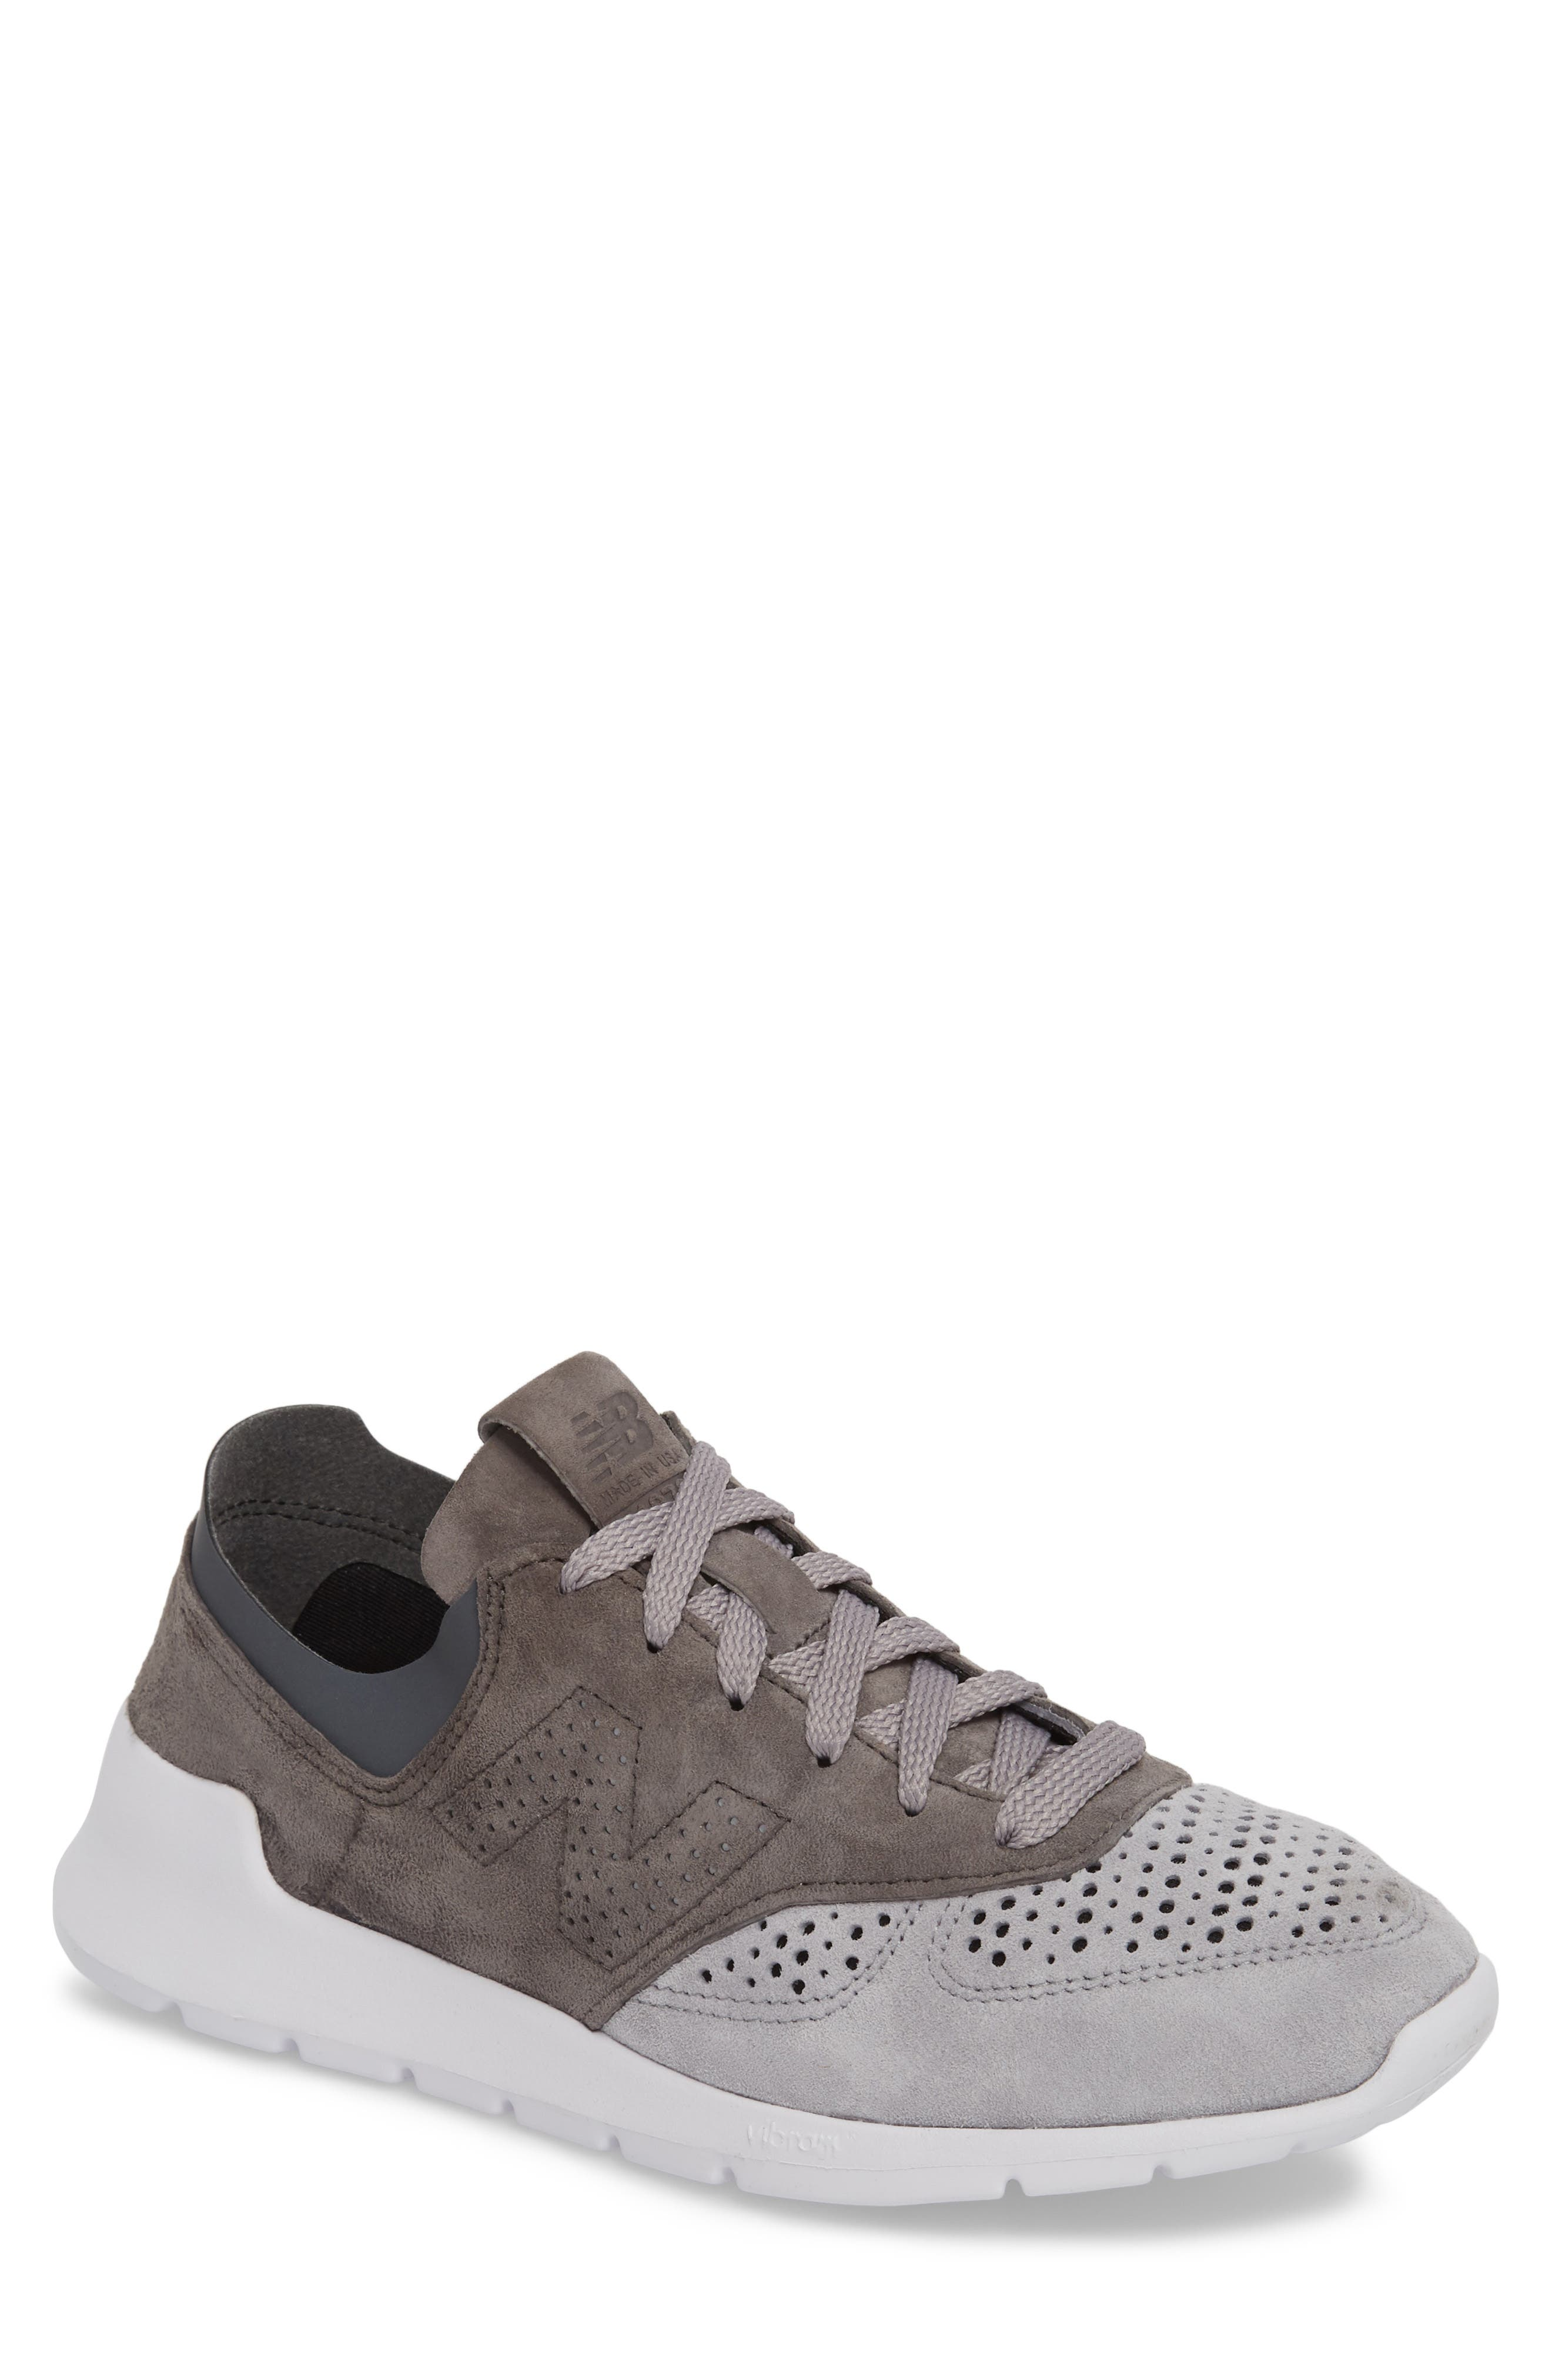 1978 Perforated Sneaker,                             Main thumbnail 1, color,                             Grey